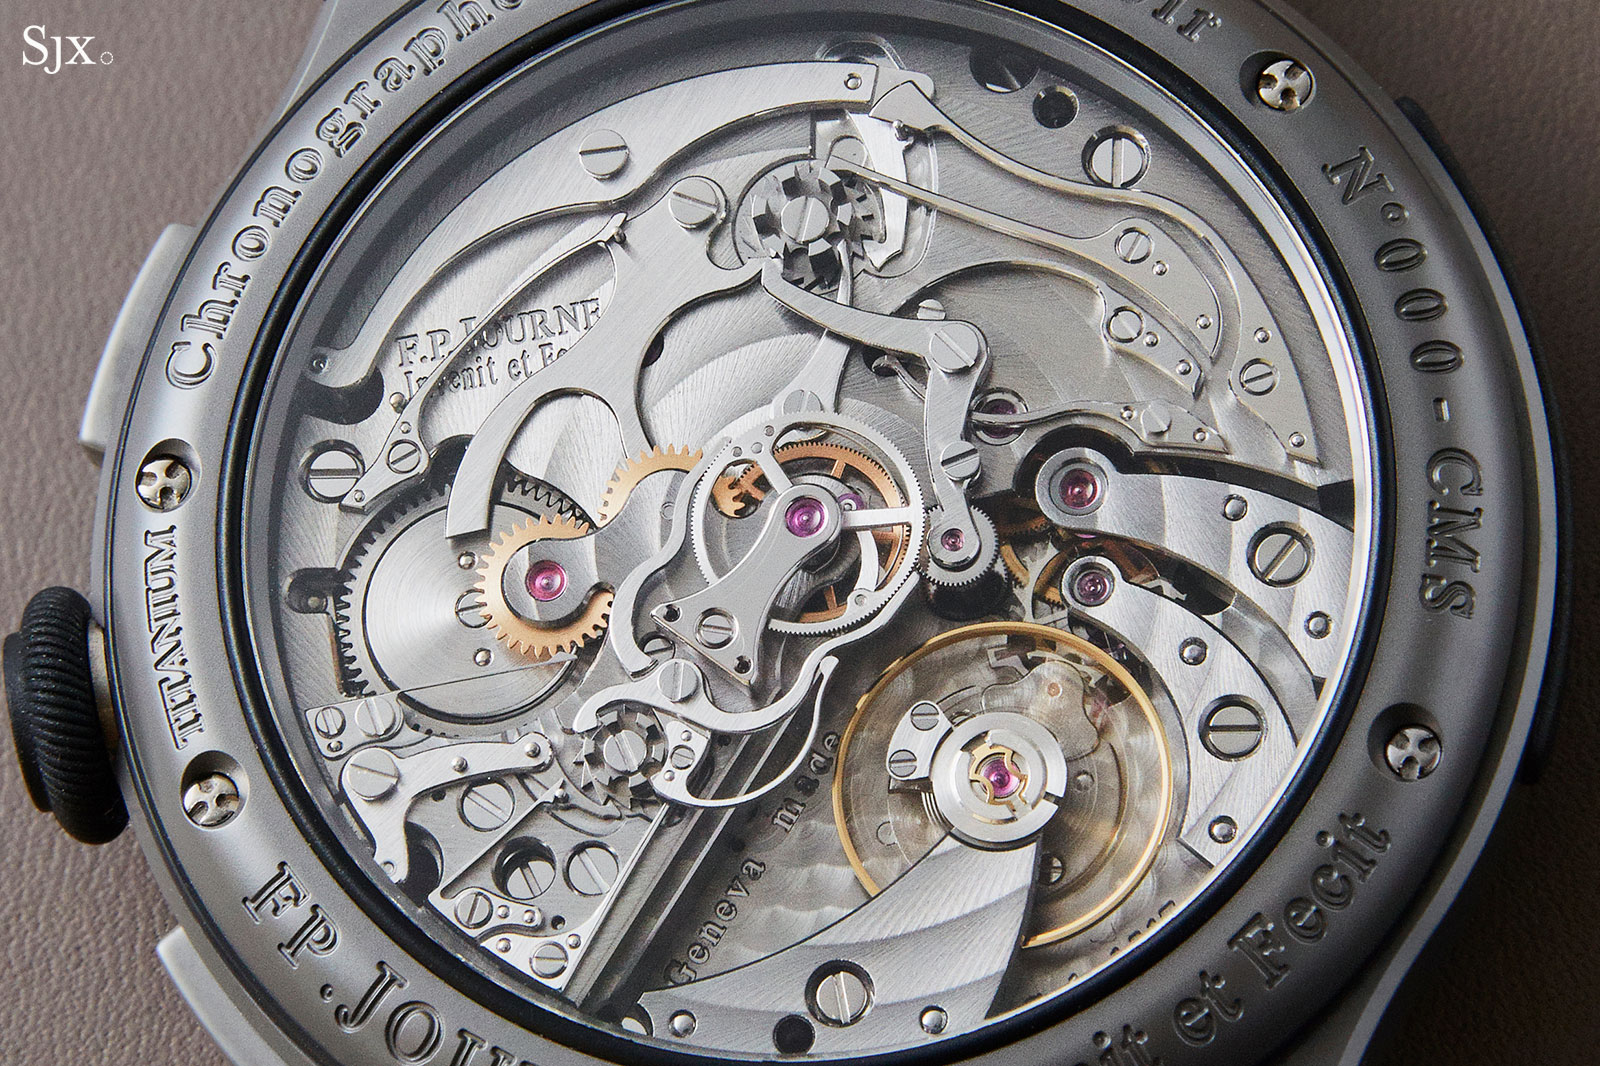 FP Journe Linesport Chronograph split seconds titanium 6